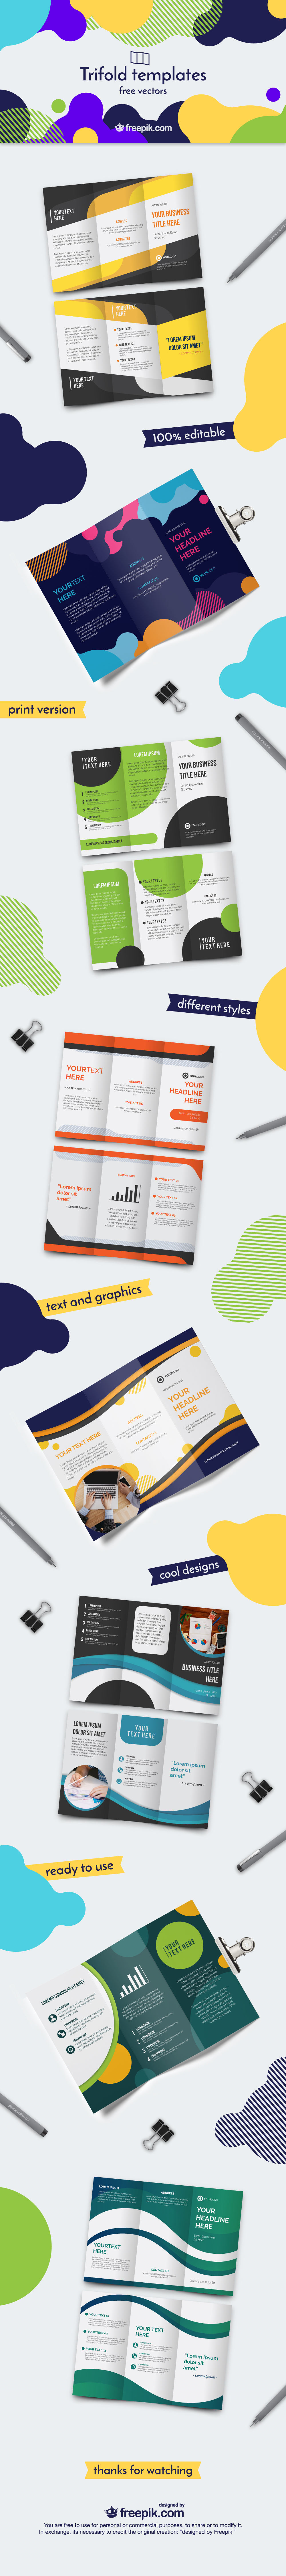 10 Trifold Templates Free Vectors